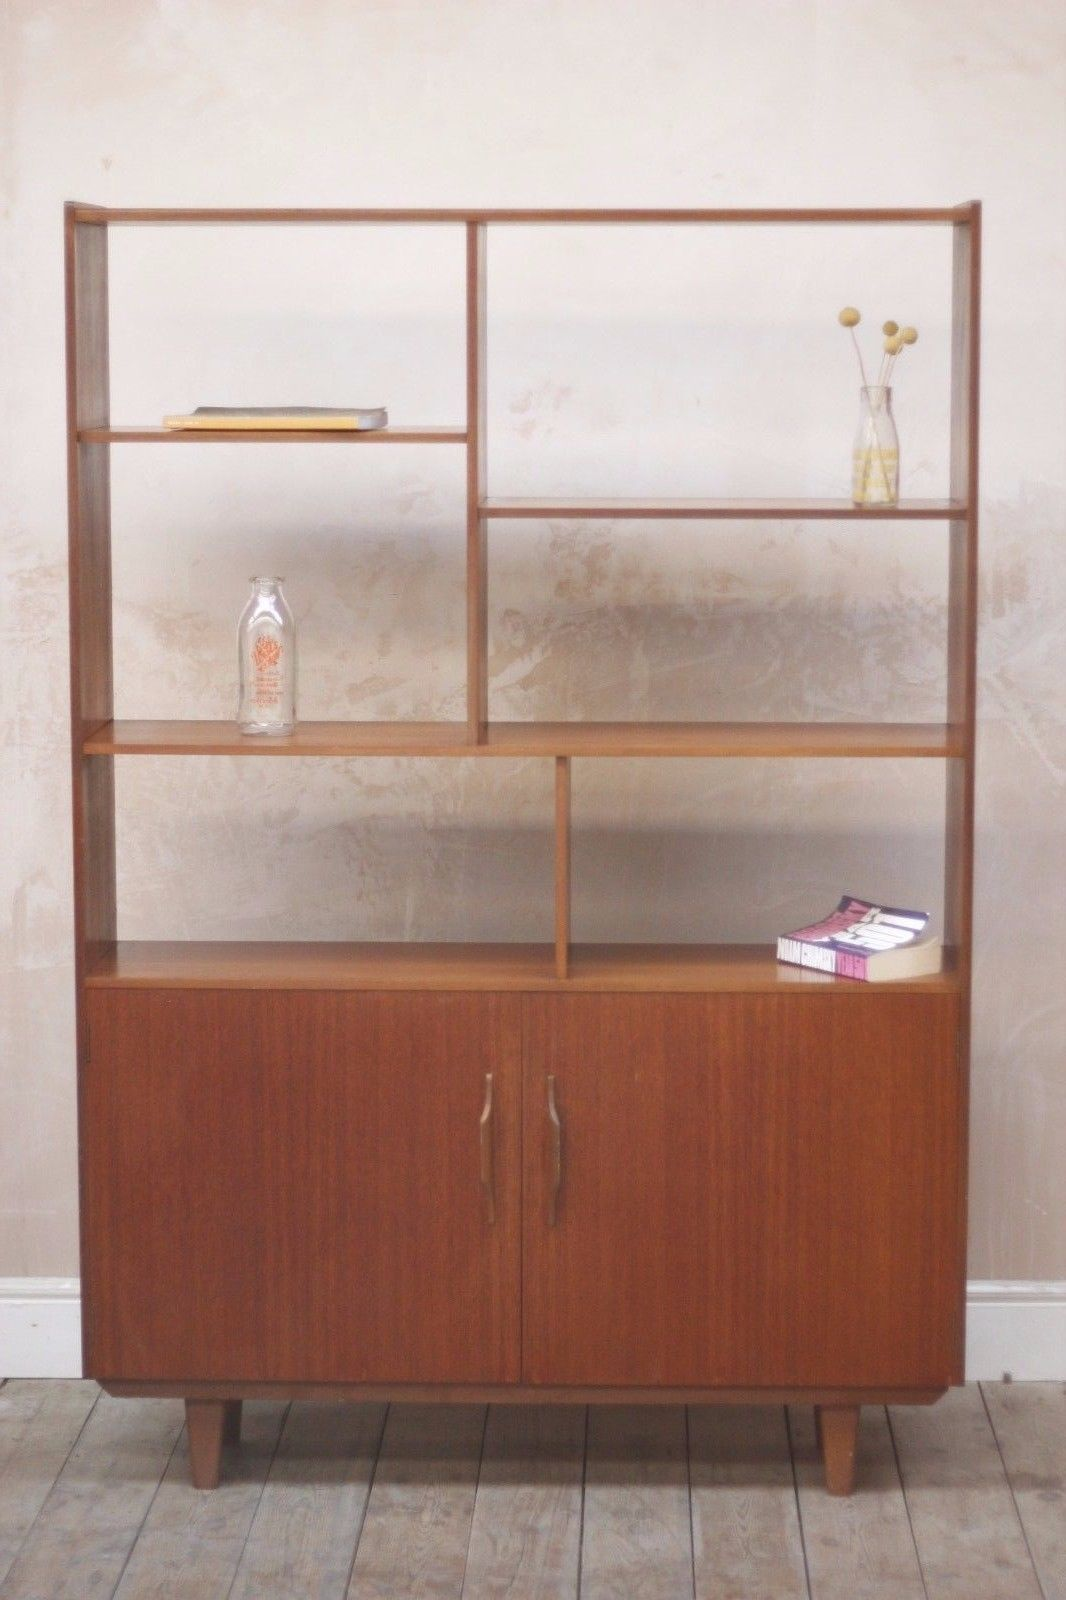 Large teak room divider in really good vintage condition that would